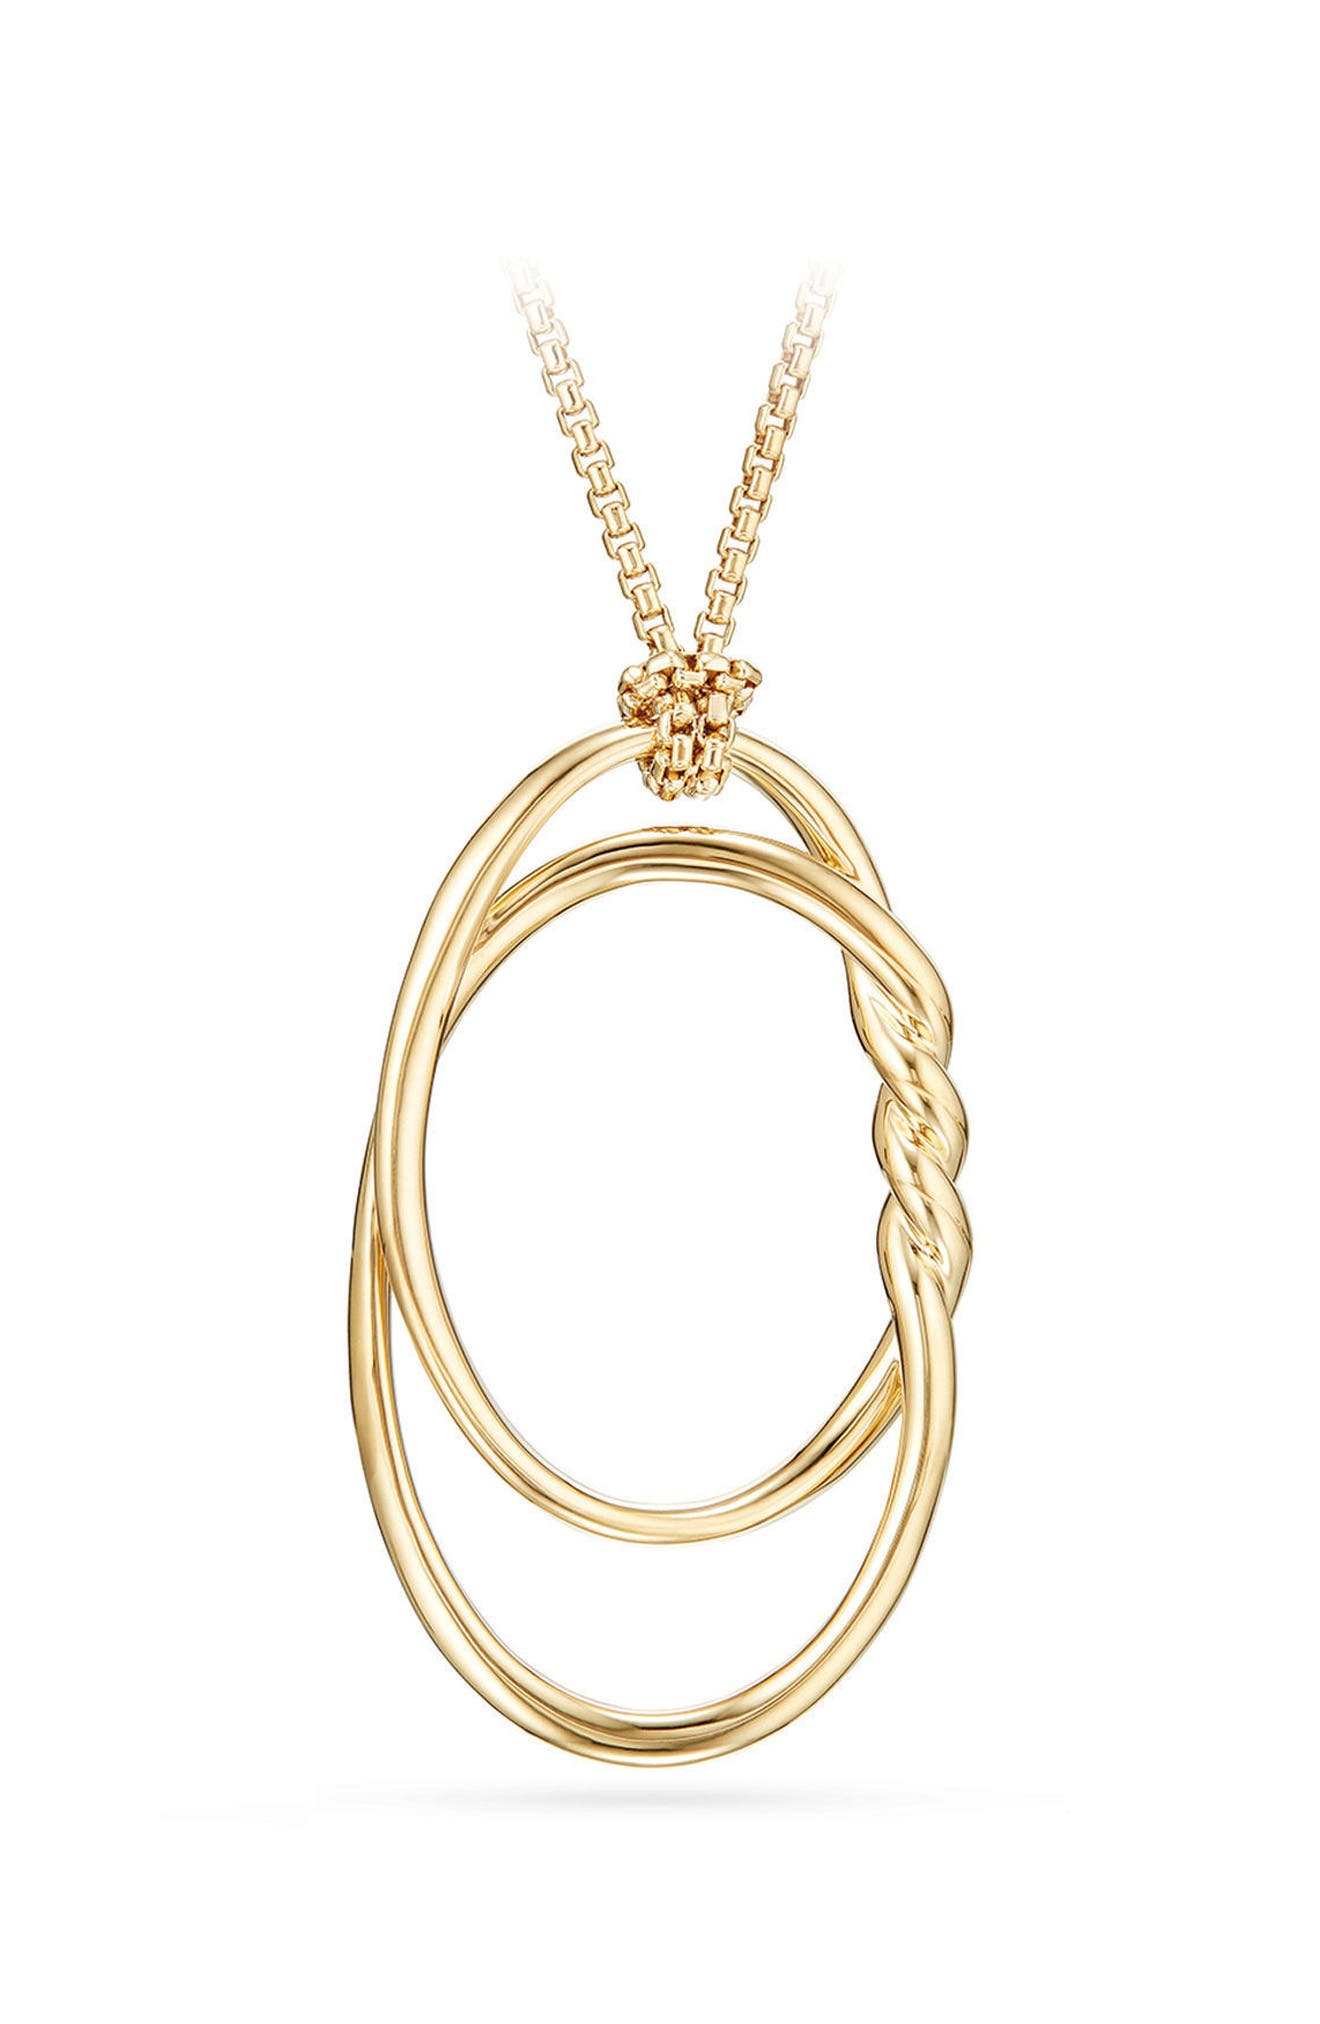 David Yurman Continuance Pendant Necklace in 18K Gold